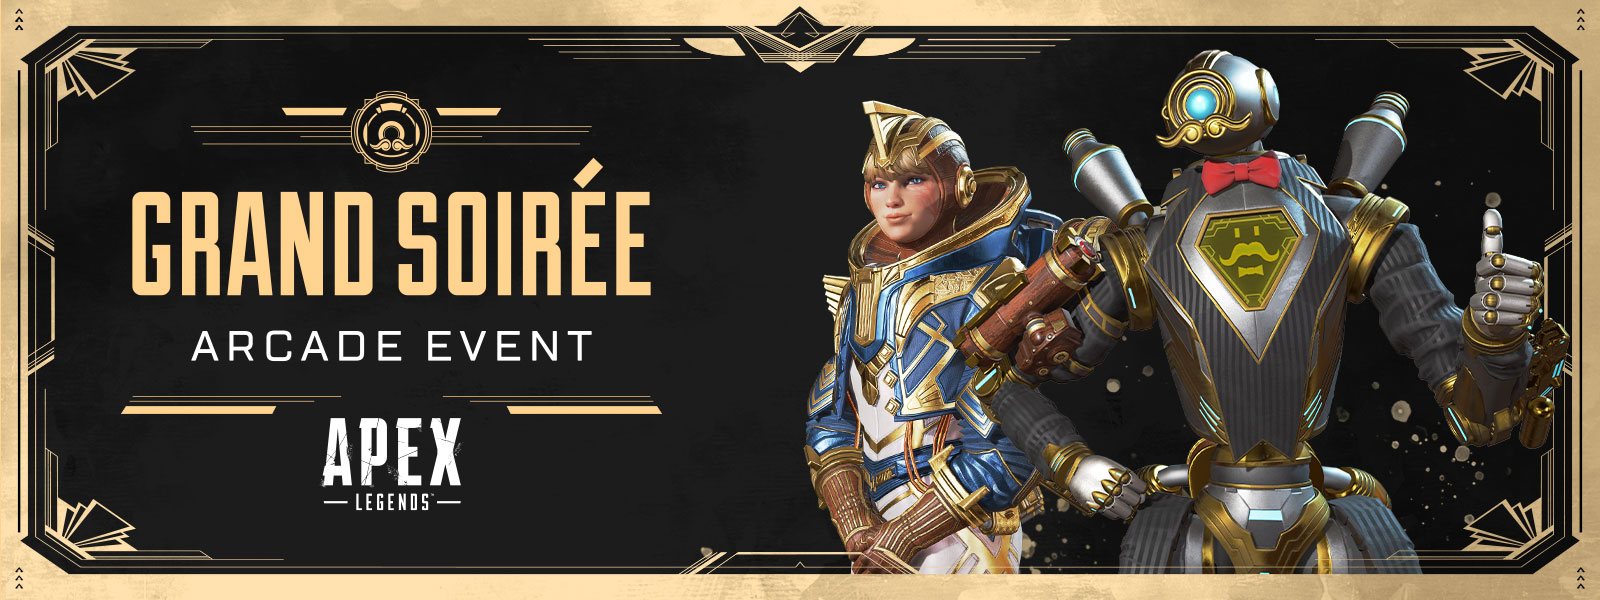 Grand Soirée arcade event, Apex Legends, two characters stand in fancy, old timey event skins.